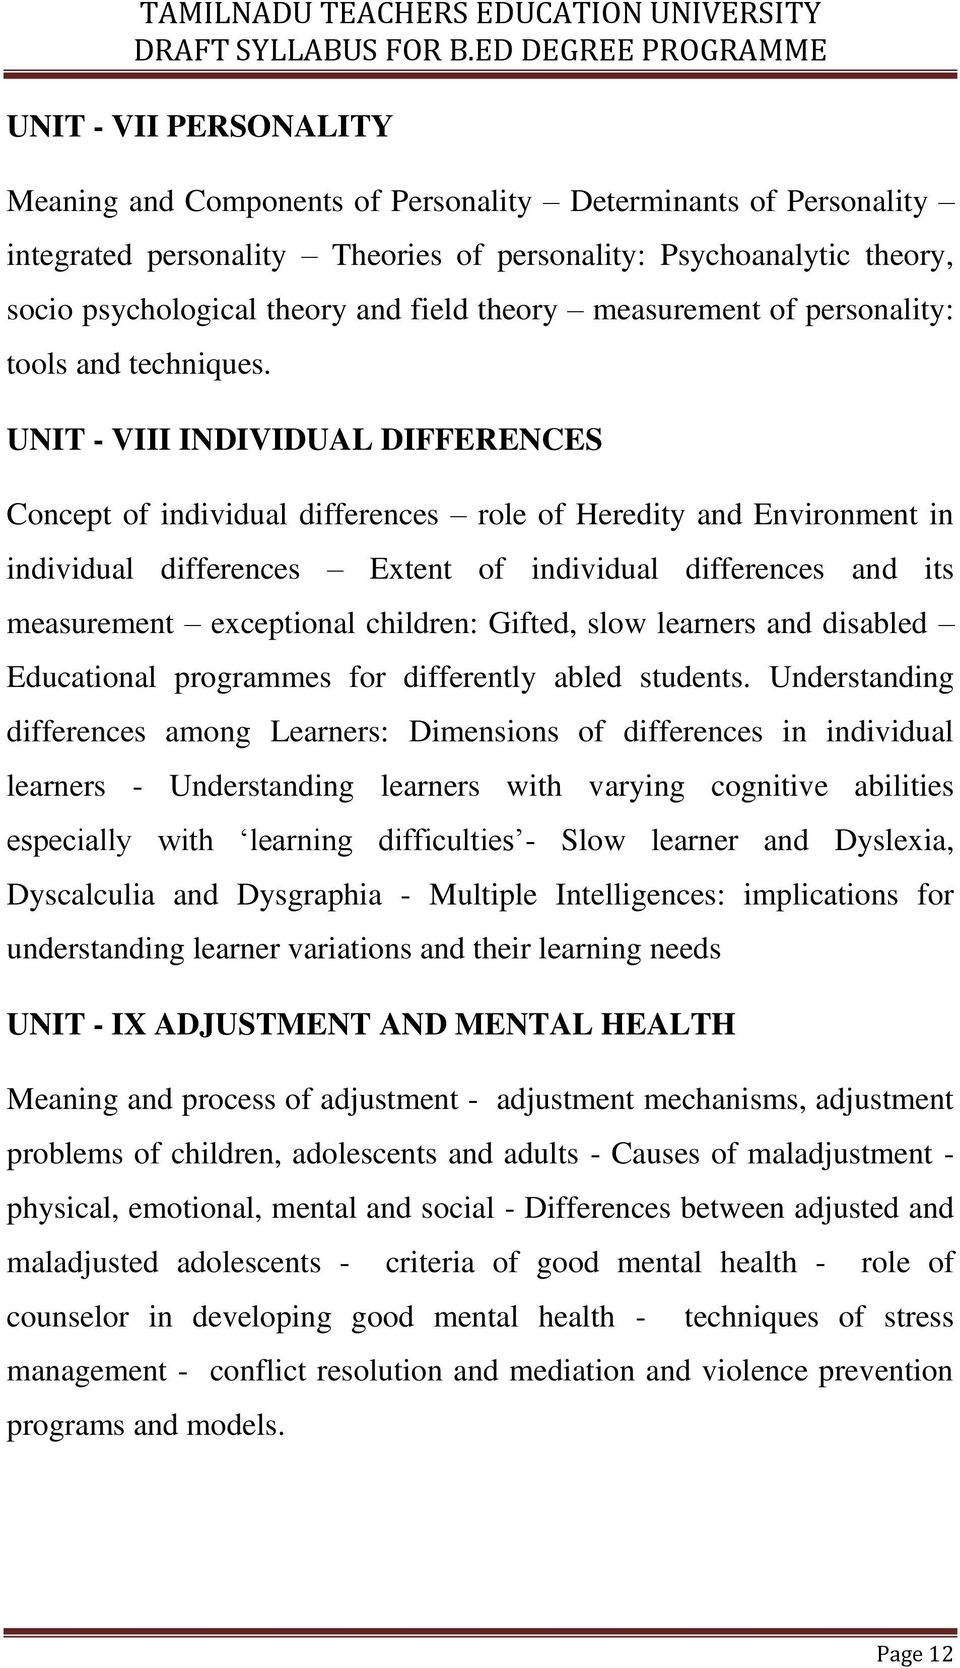 UNIT - VIII INDIVIDUAL DIFFERENCES Concept of individual differences role of Heredity and Environment in individual differences Extent of individual differences and its measurement exceptional